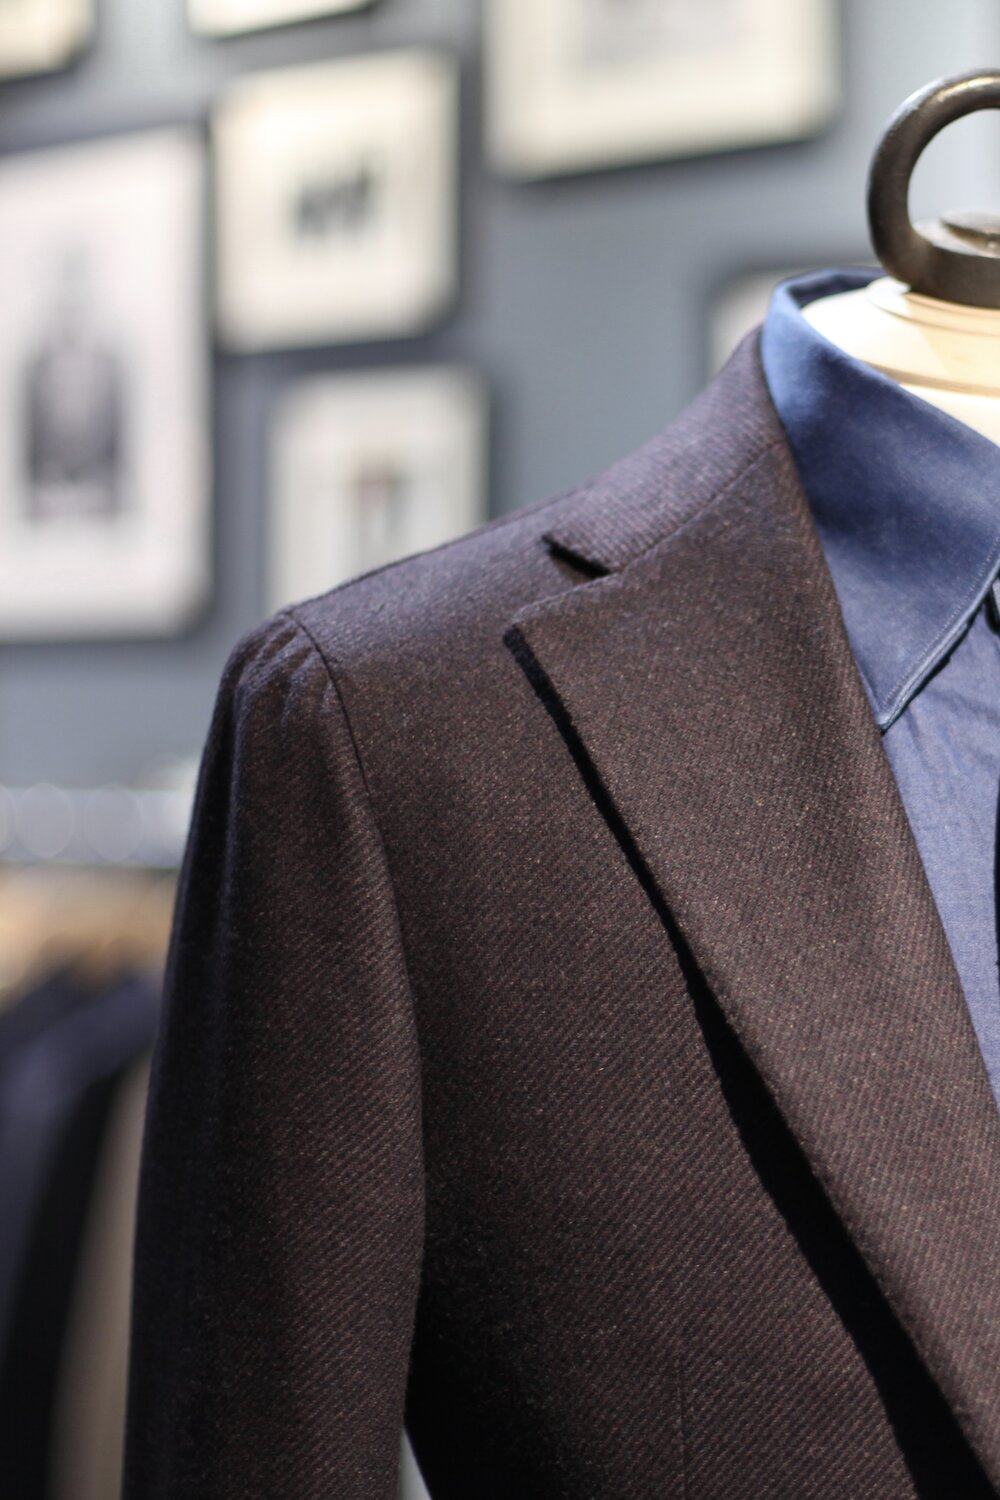 Neapolitan Shoulder - Notch Lapel